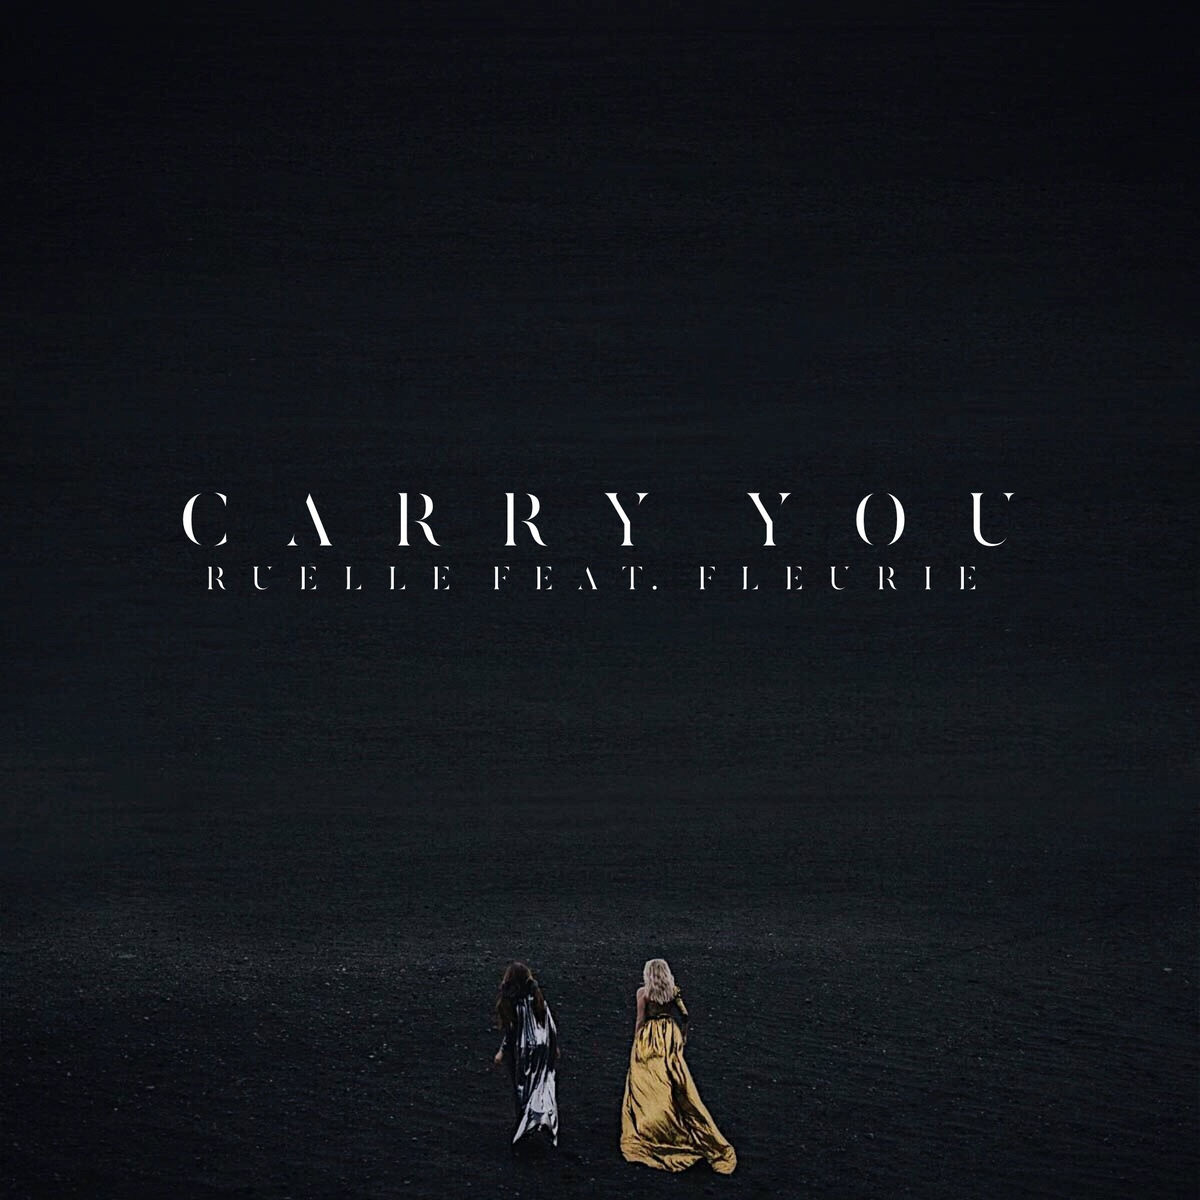 ruelle_feat_fleurie-carry_you_s.jpg